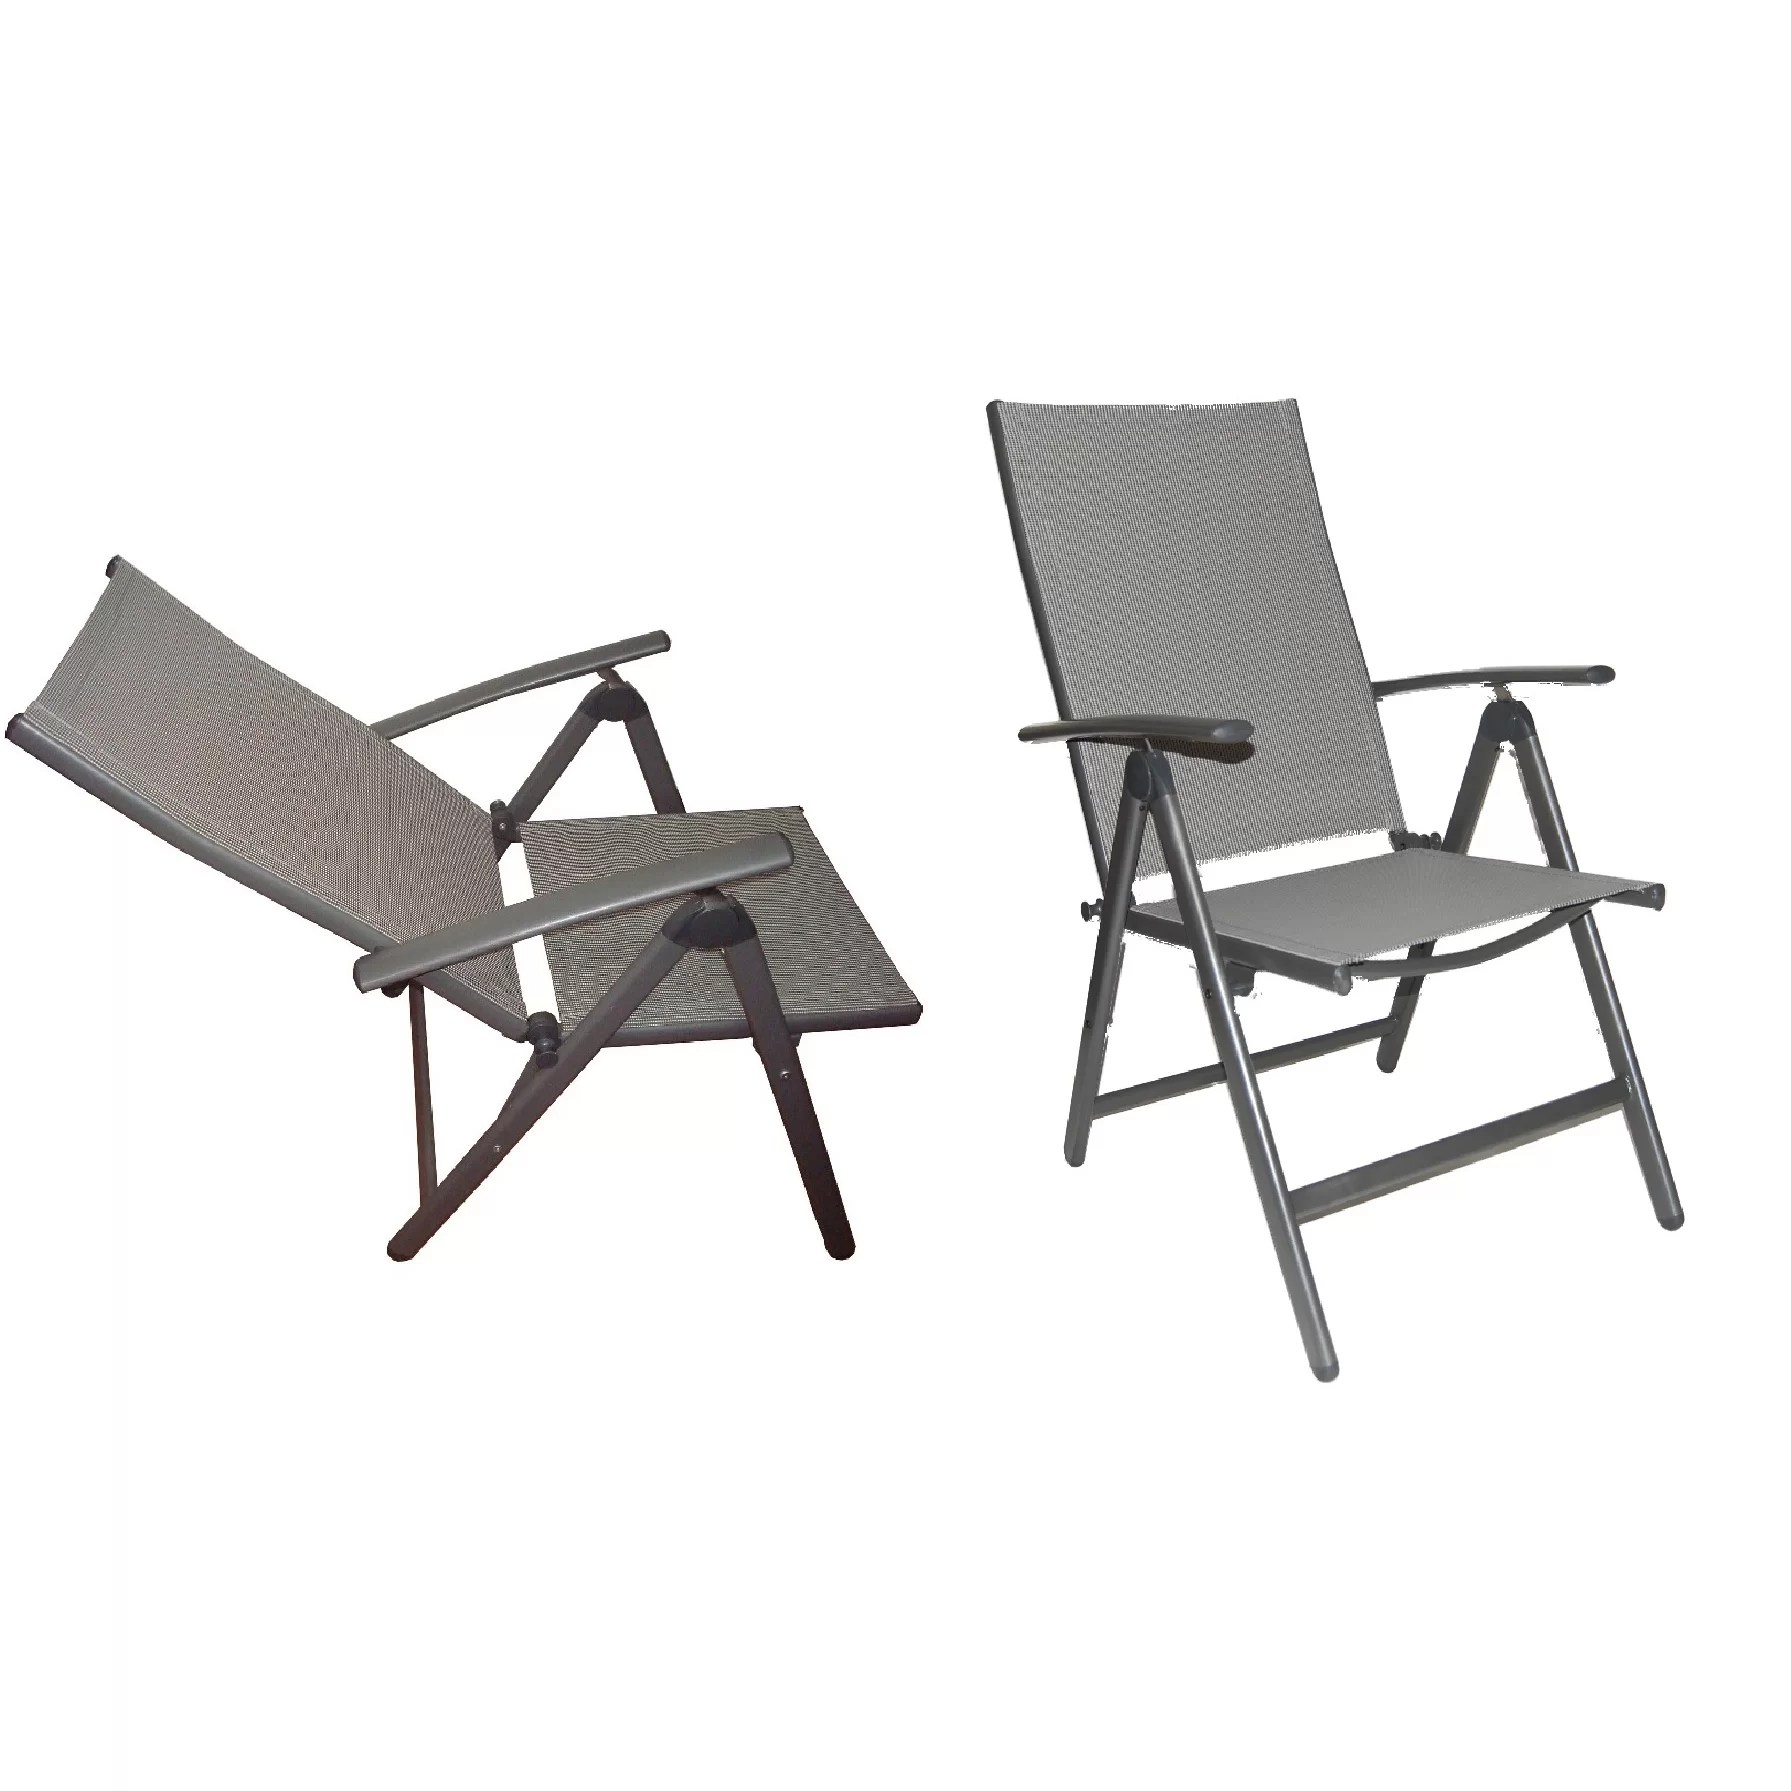 high back chair patio furniture aunt priscilla has a rocking wasatch imports reclining and reviews